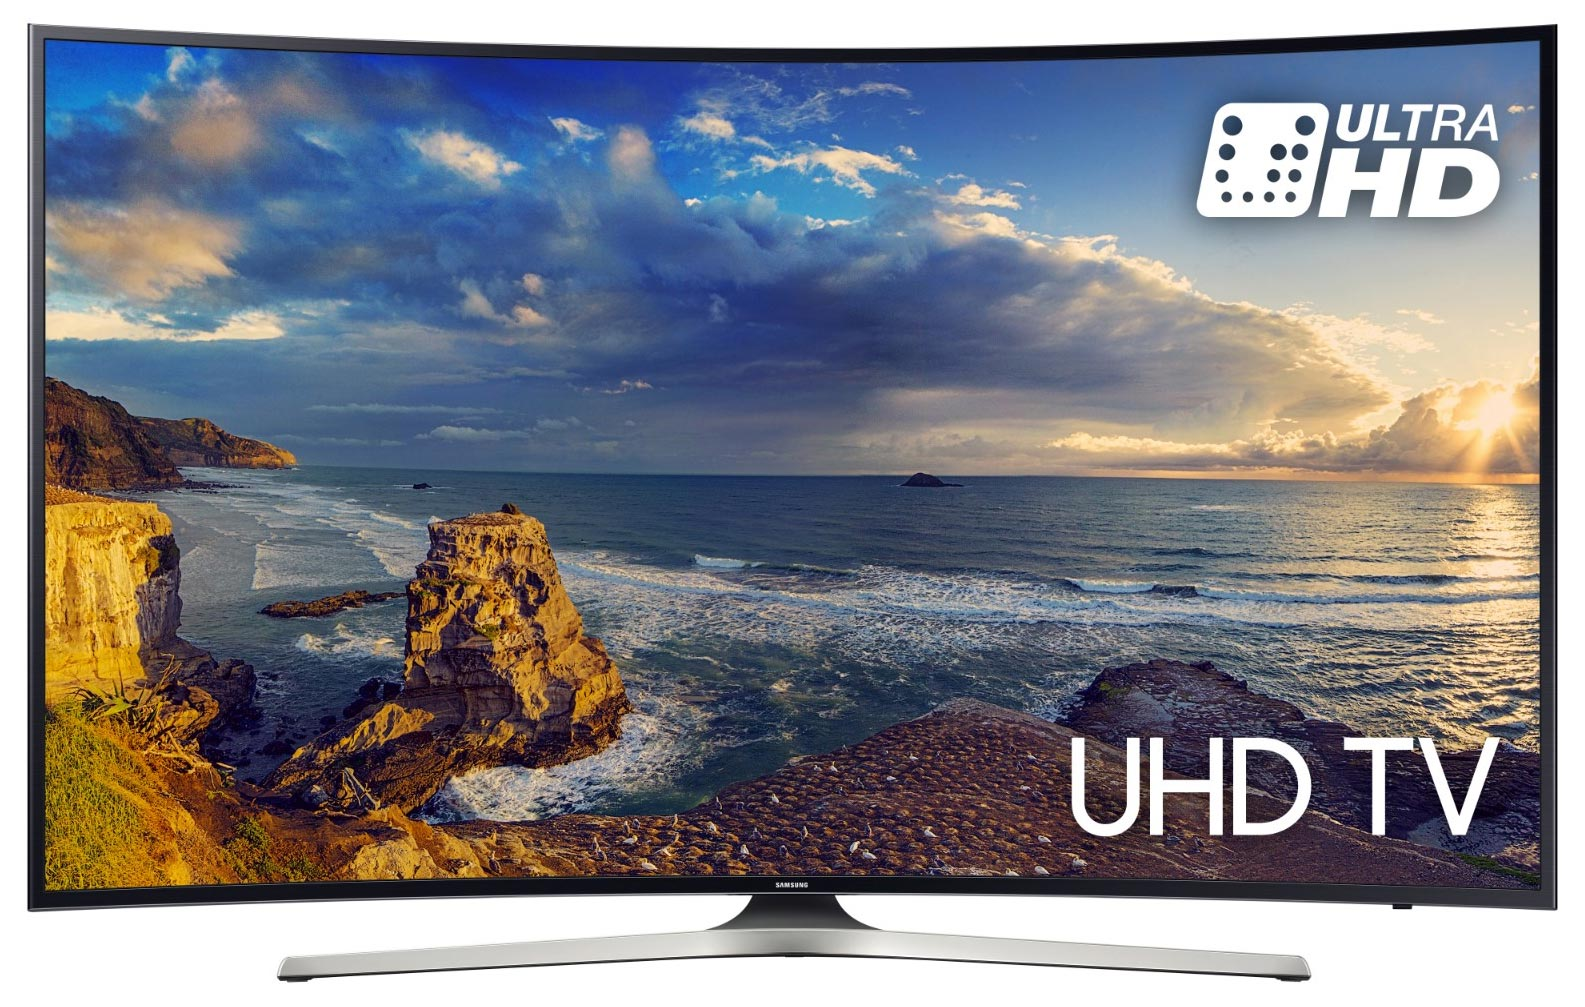 Samsung Flat Screen Tv Price Samsung 2017 Tv Line Up Full Overview With Prices Flatpanelshd